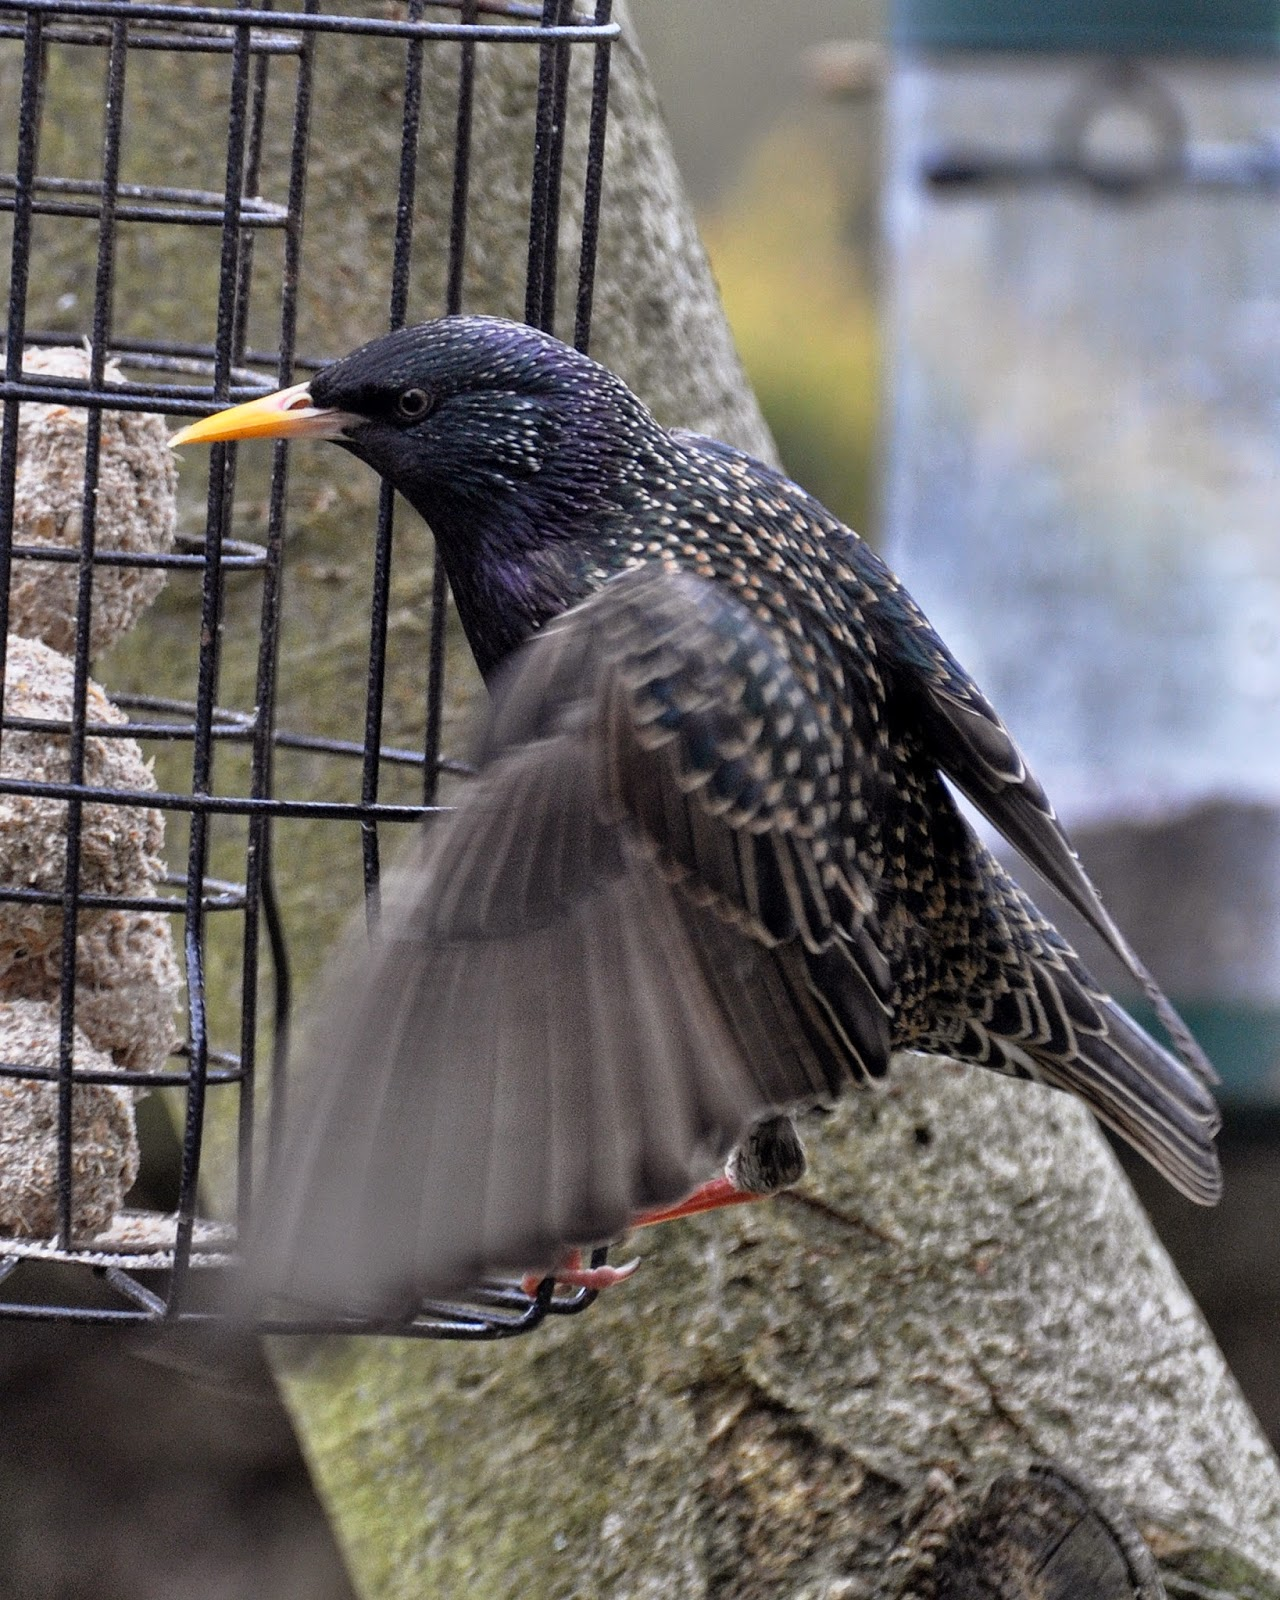 starling on bird feeder